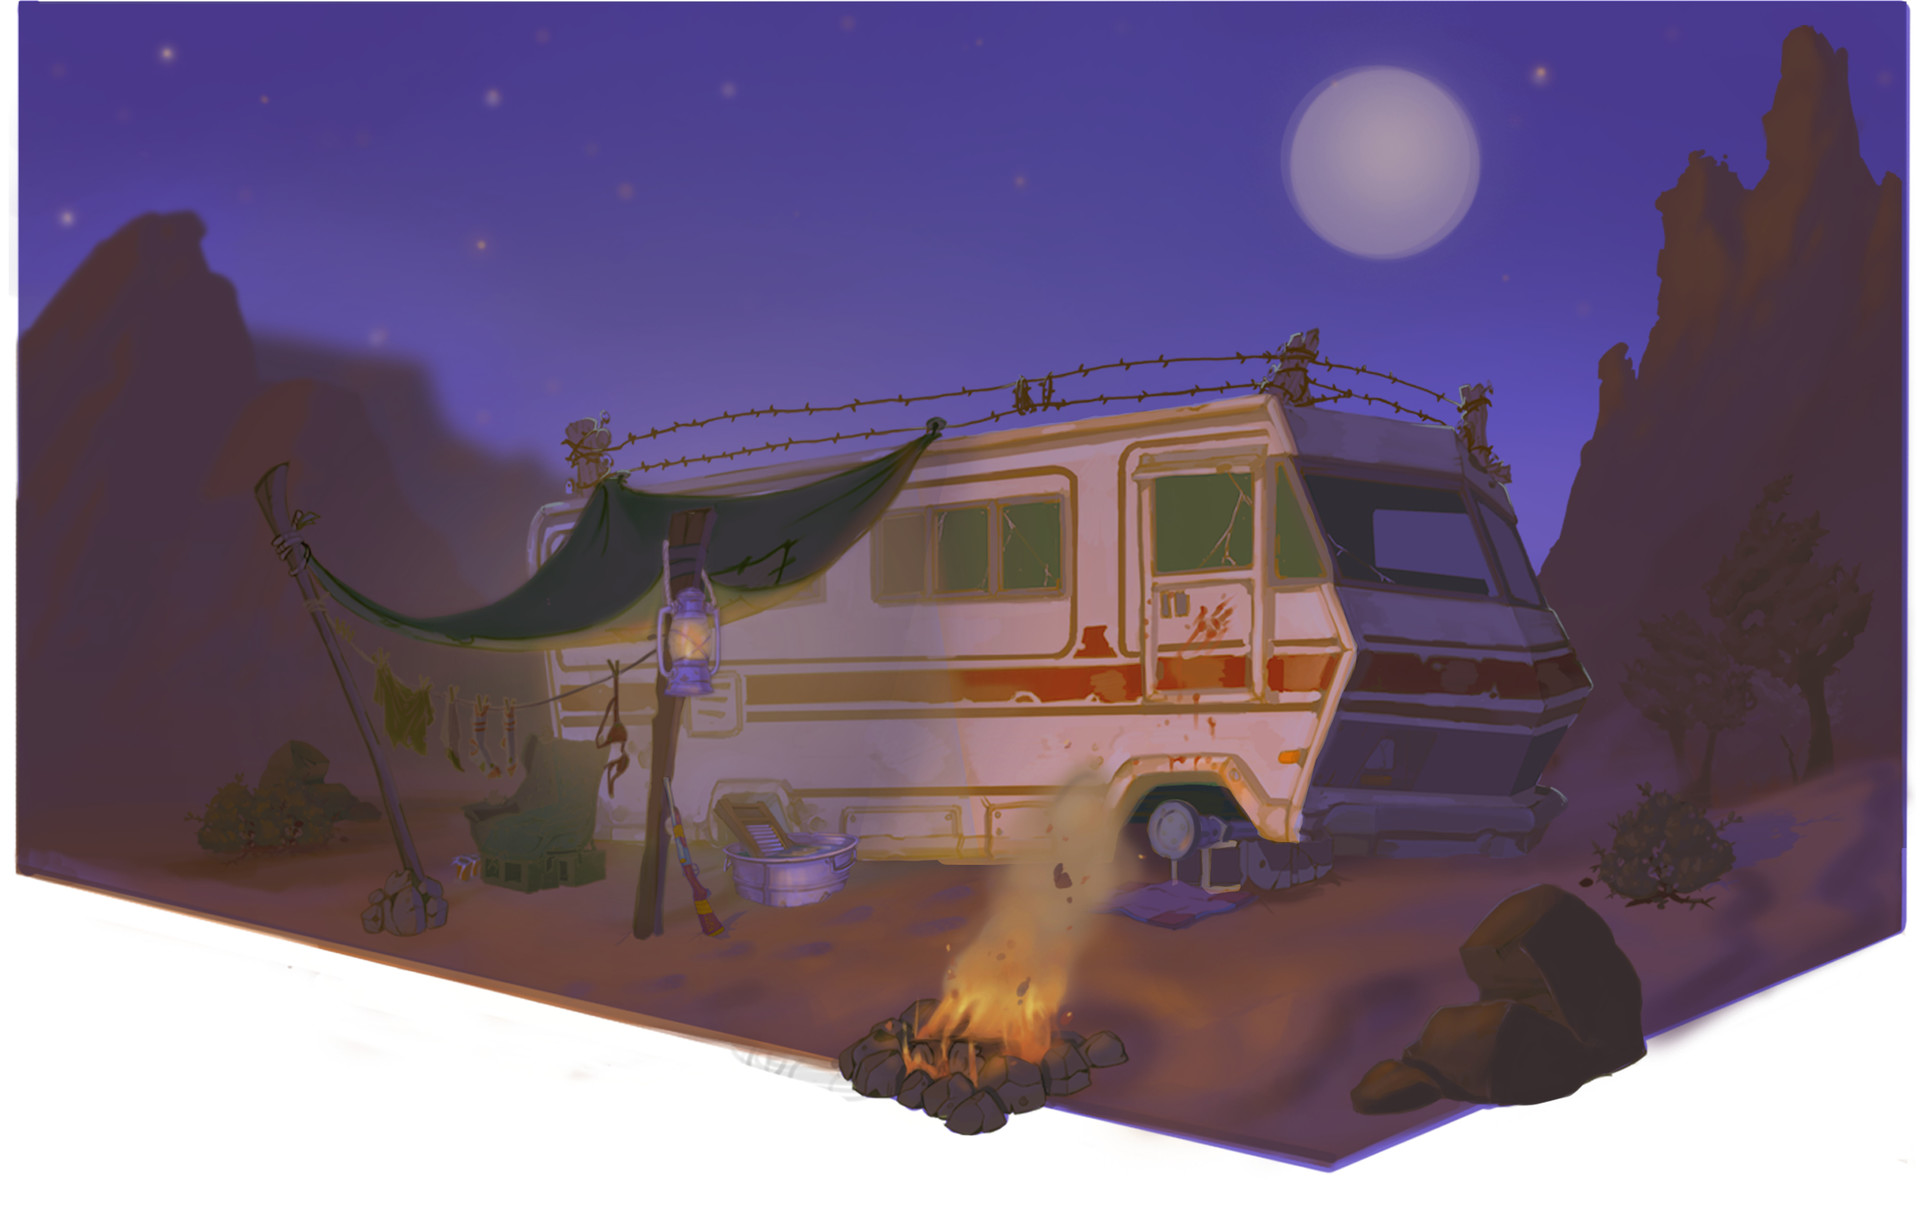 Brent poliquin rv night time